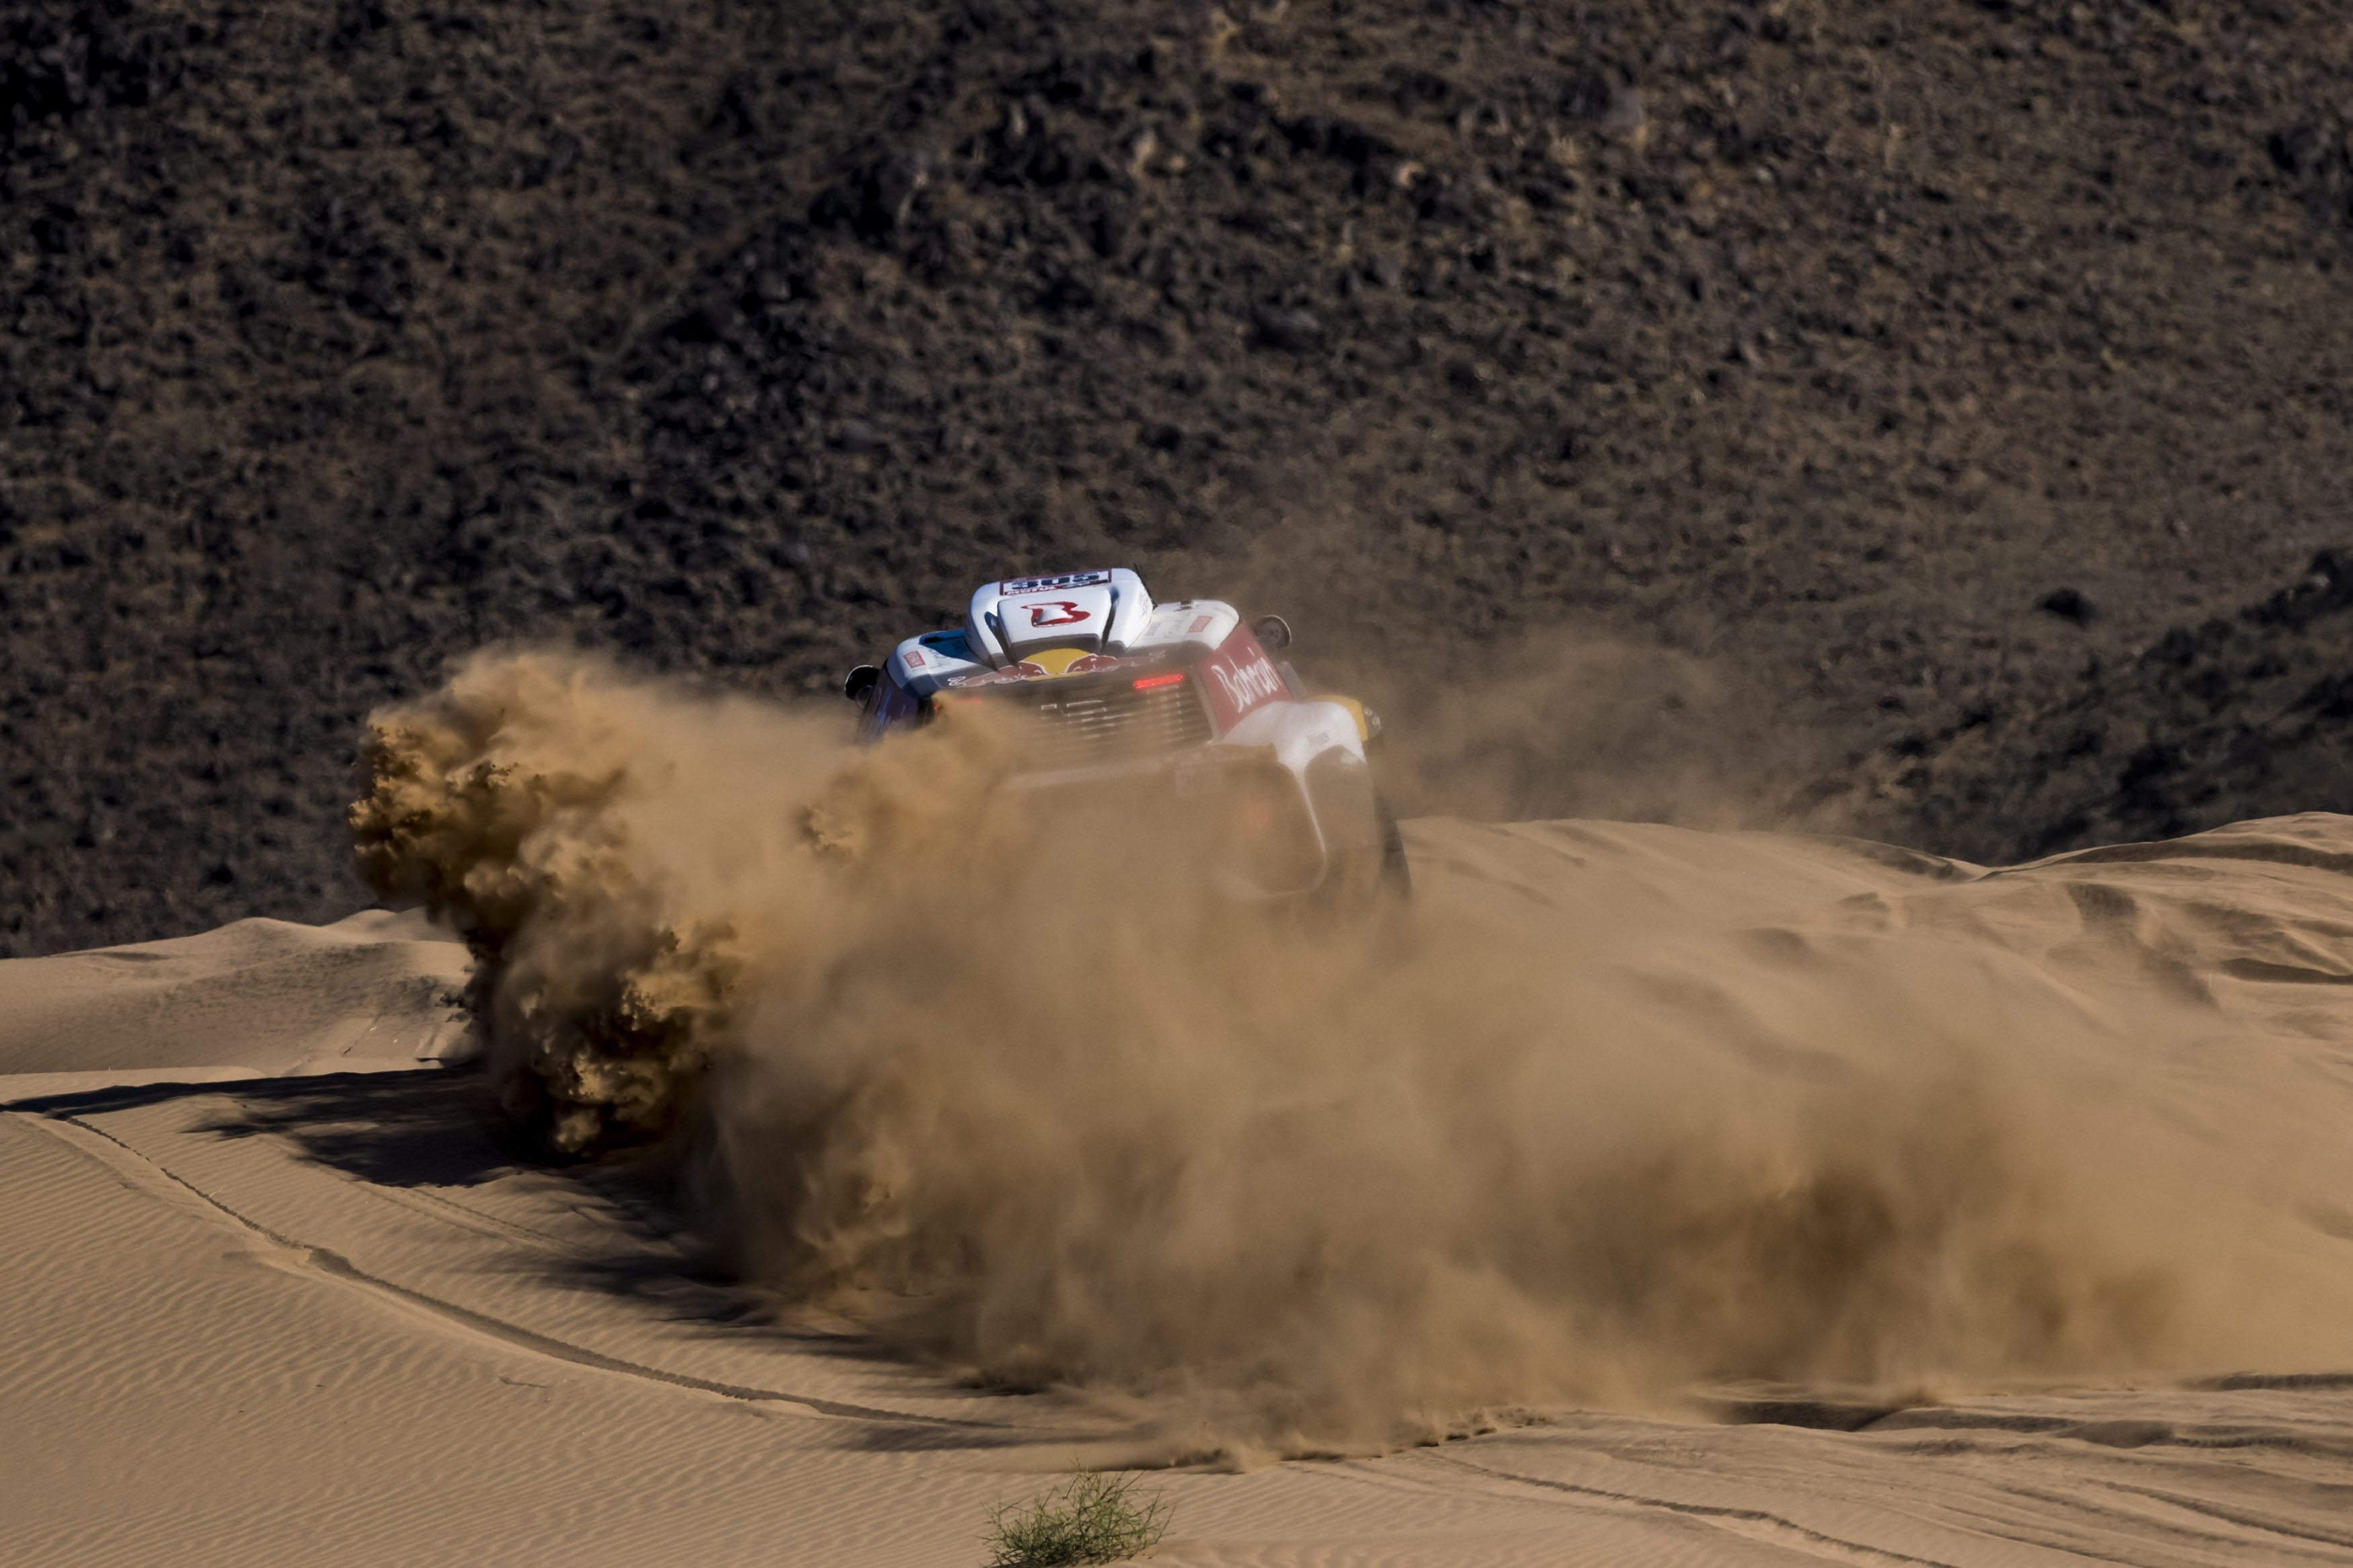 Sainz extends his overall lead, fourth stage win for the Spanish driver